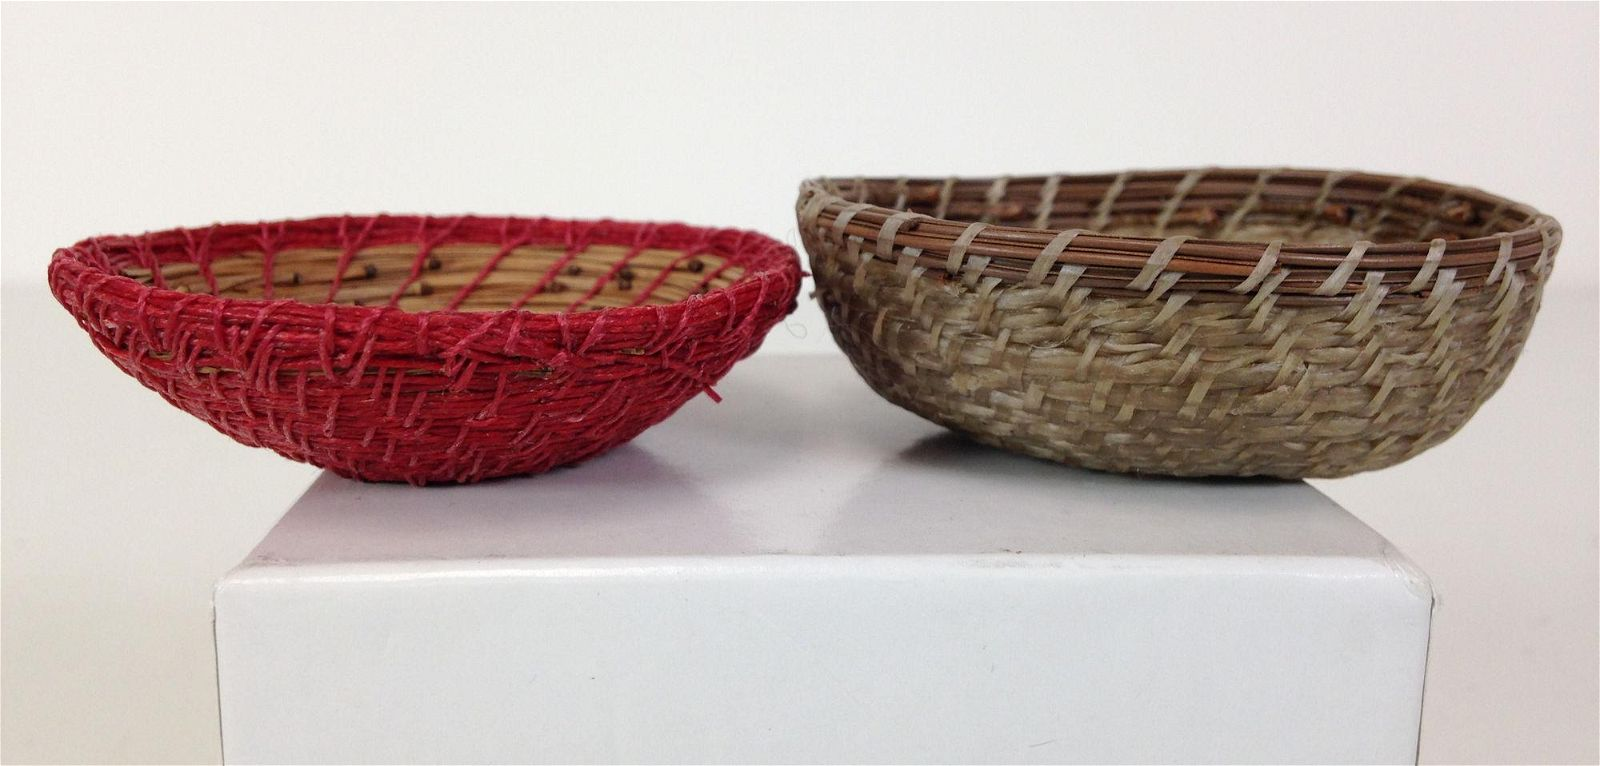 (2) MINIATURE INDIAN BASKETS. FINELY WOVEN INTEGRATING